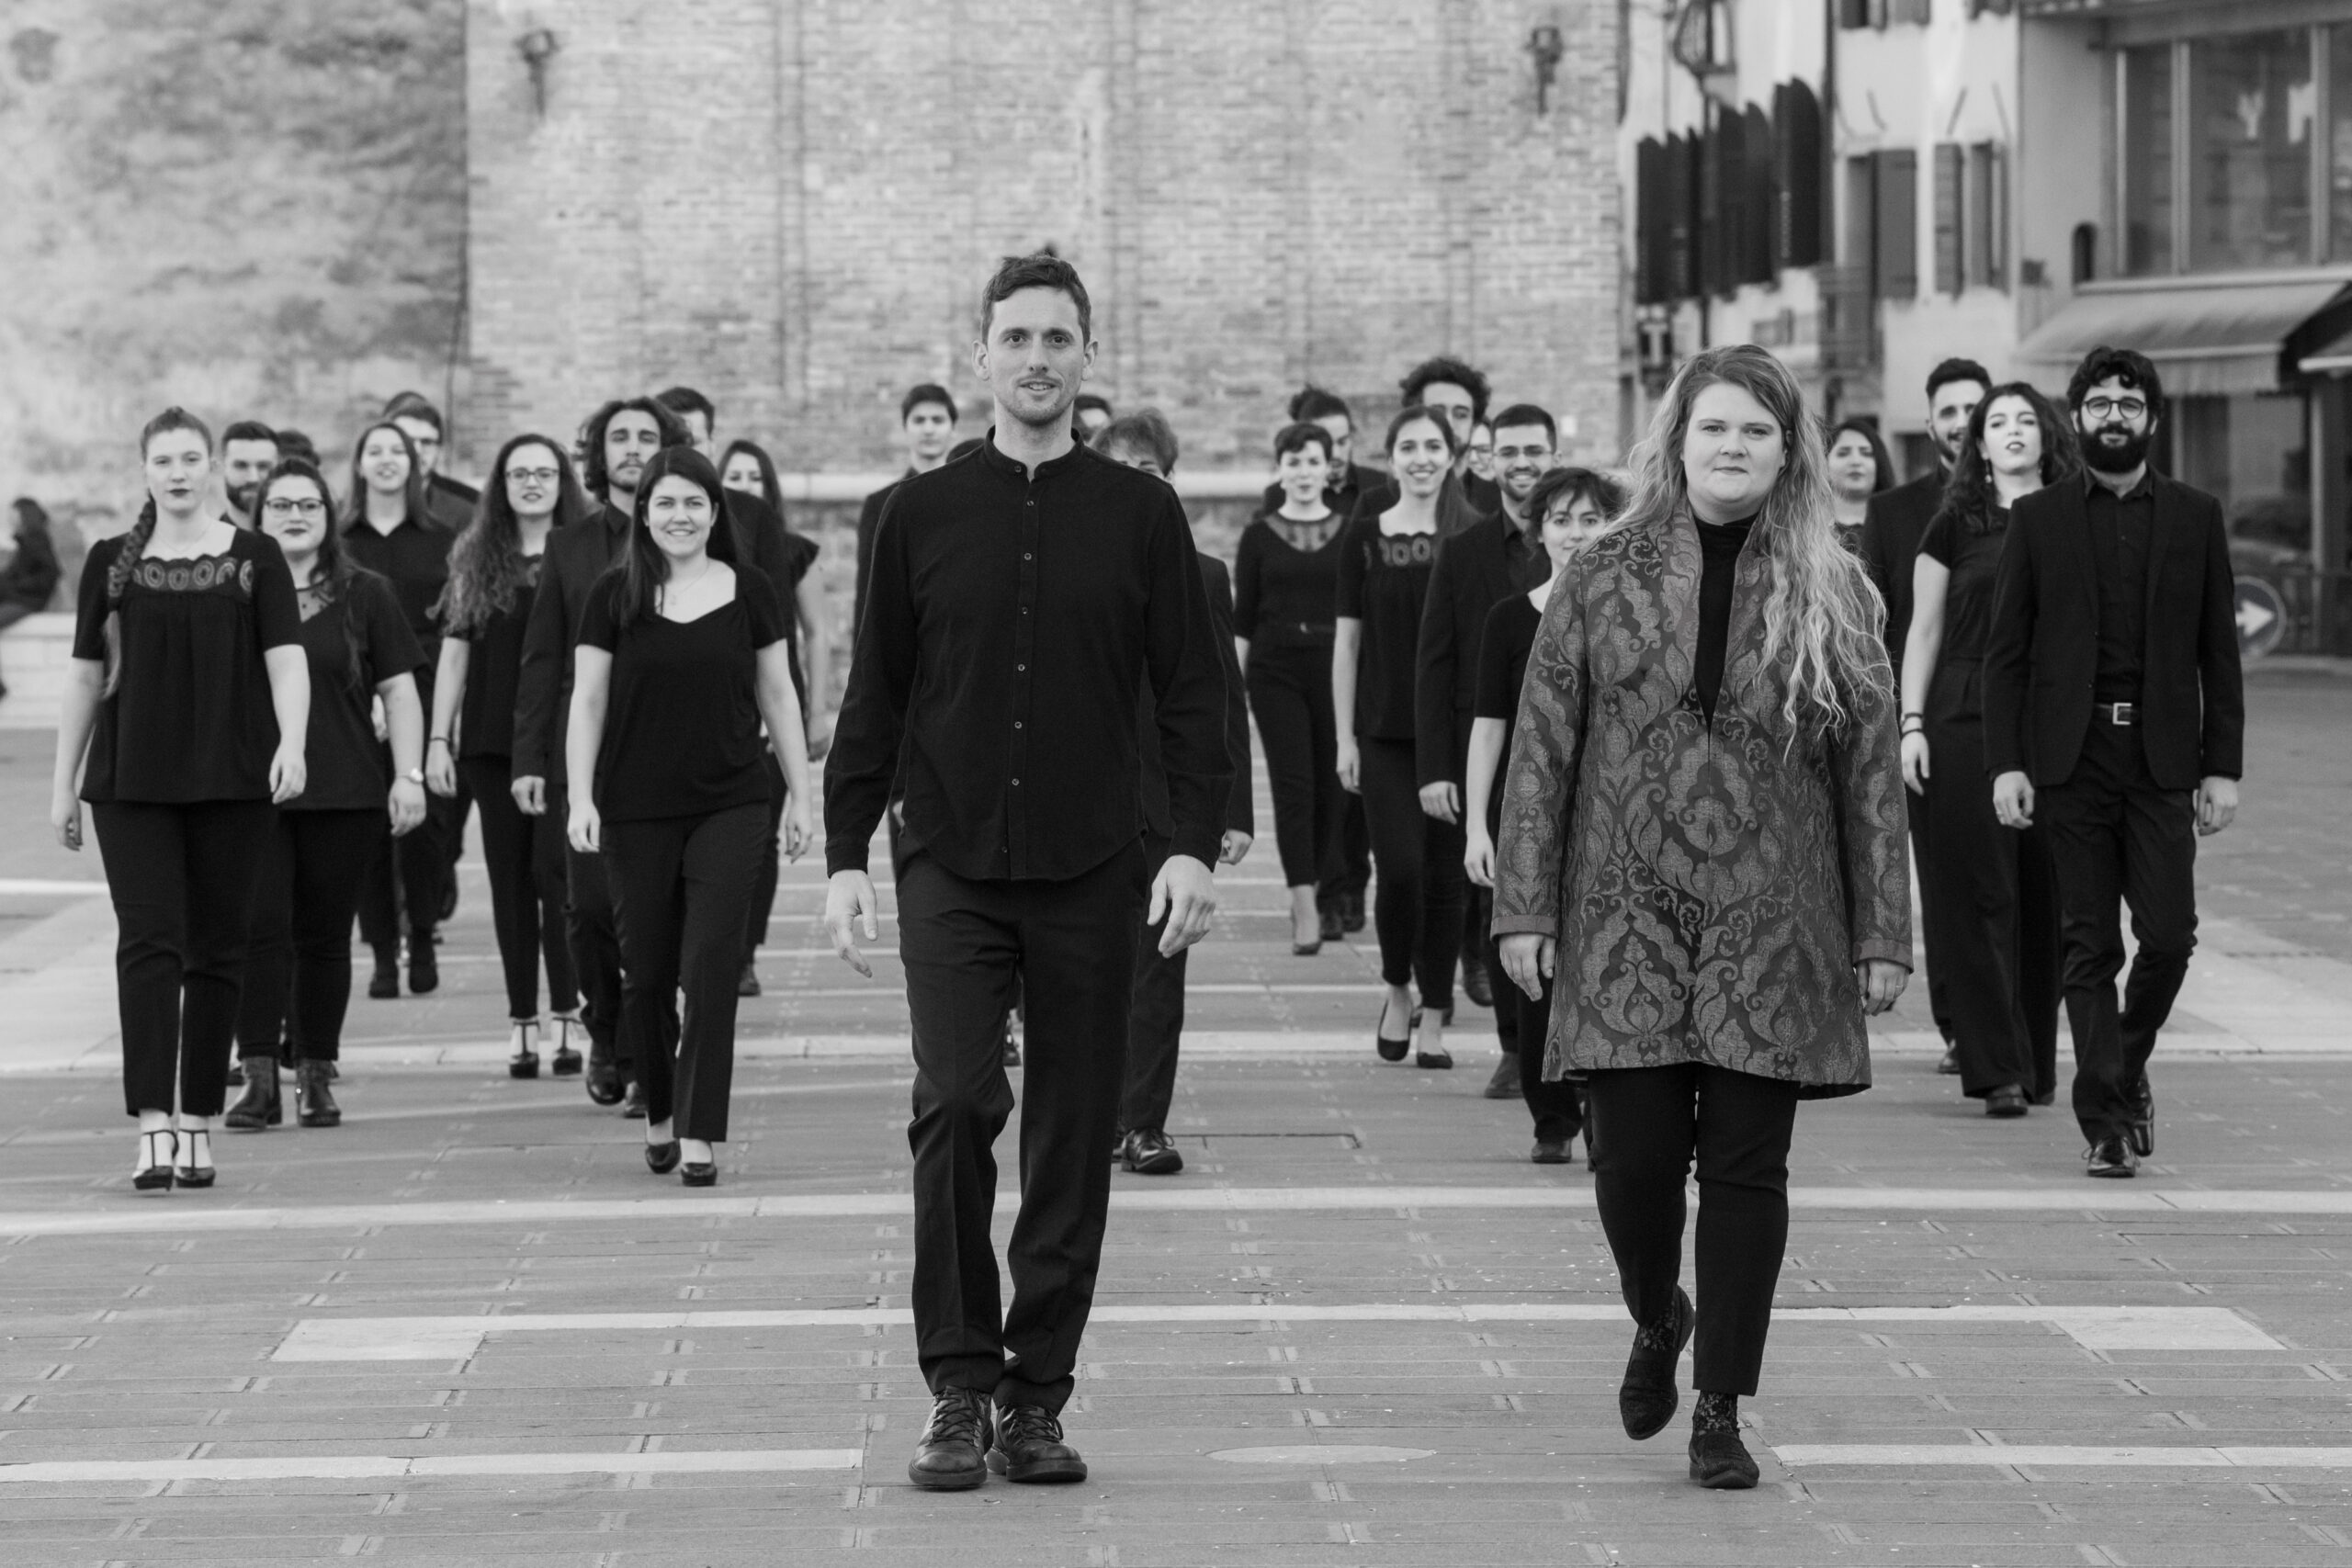 Francesca Daneluzzi, FENIARCO (Federazione Nazionale Italiana delle Associazioni Regionali Corali), Italy: Walking Together, 2020, Italian Youth Choir Coro Giovanile Italiano - The horizon is clear in front of us: let's walk and sing together. Our voices will sound with energy and fill your hearts.